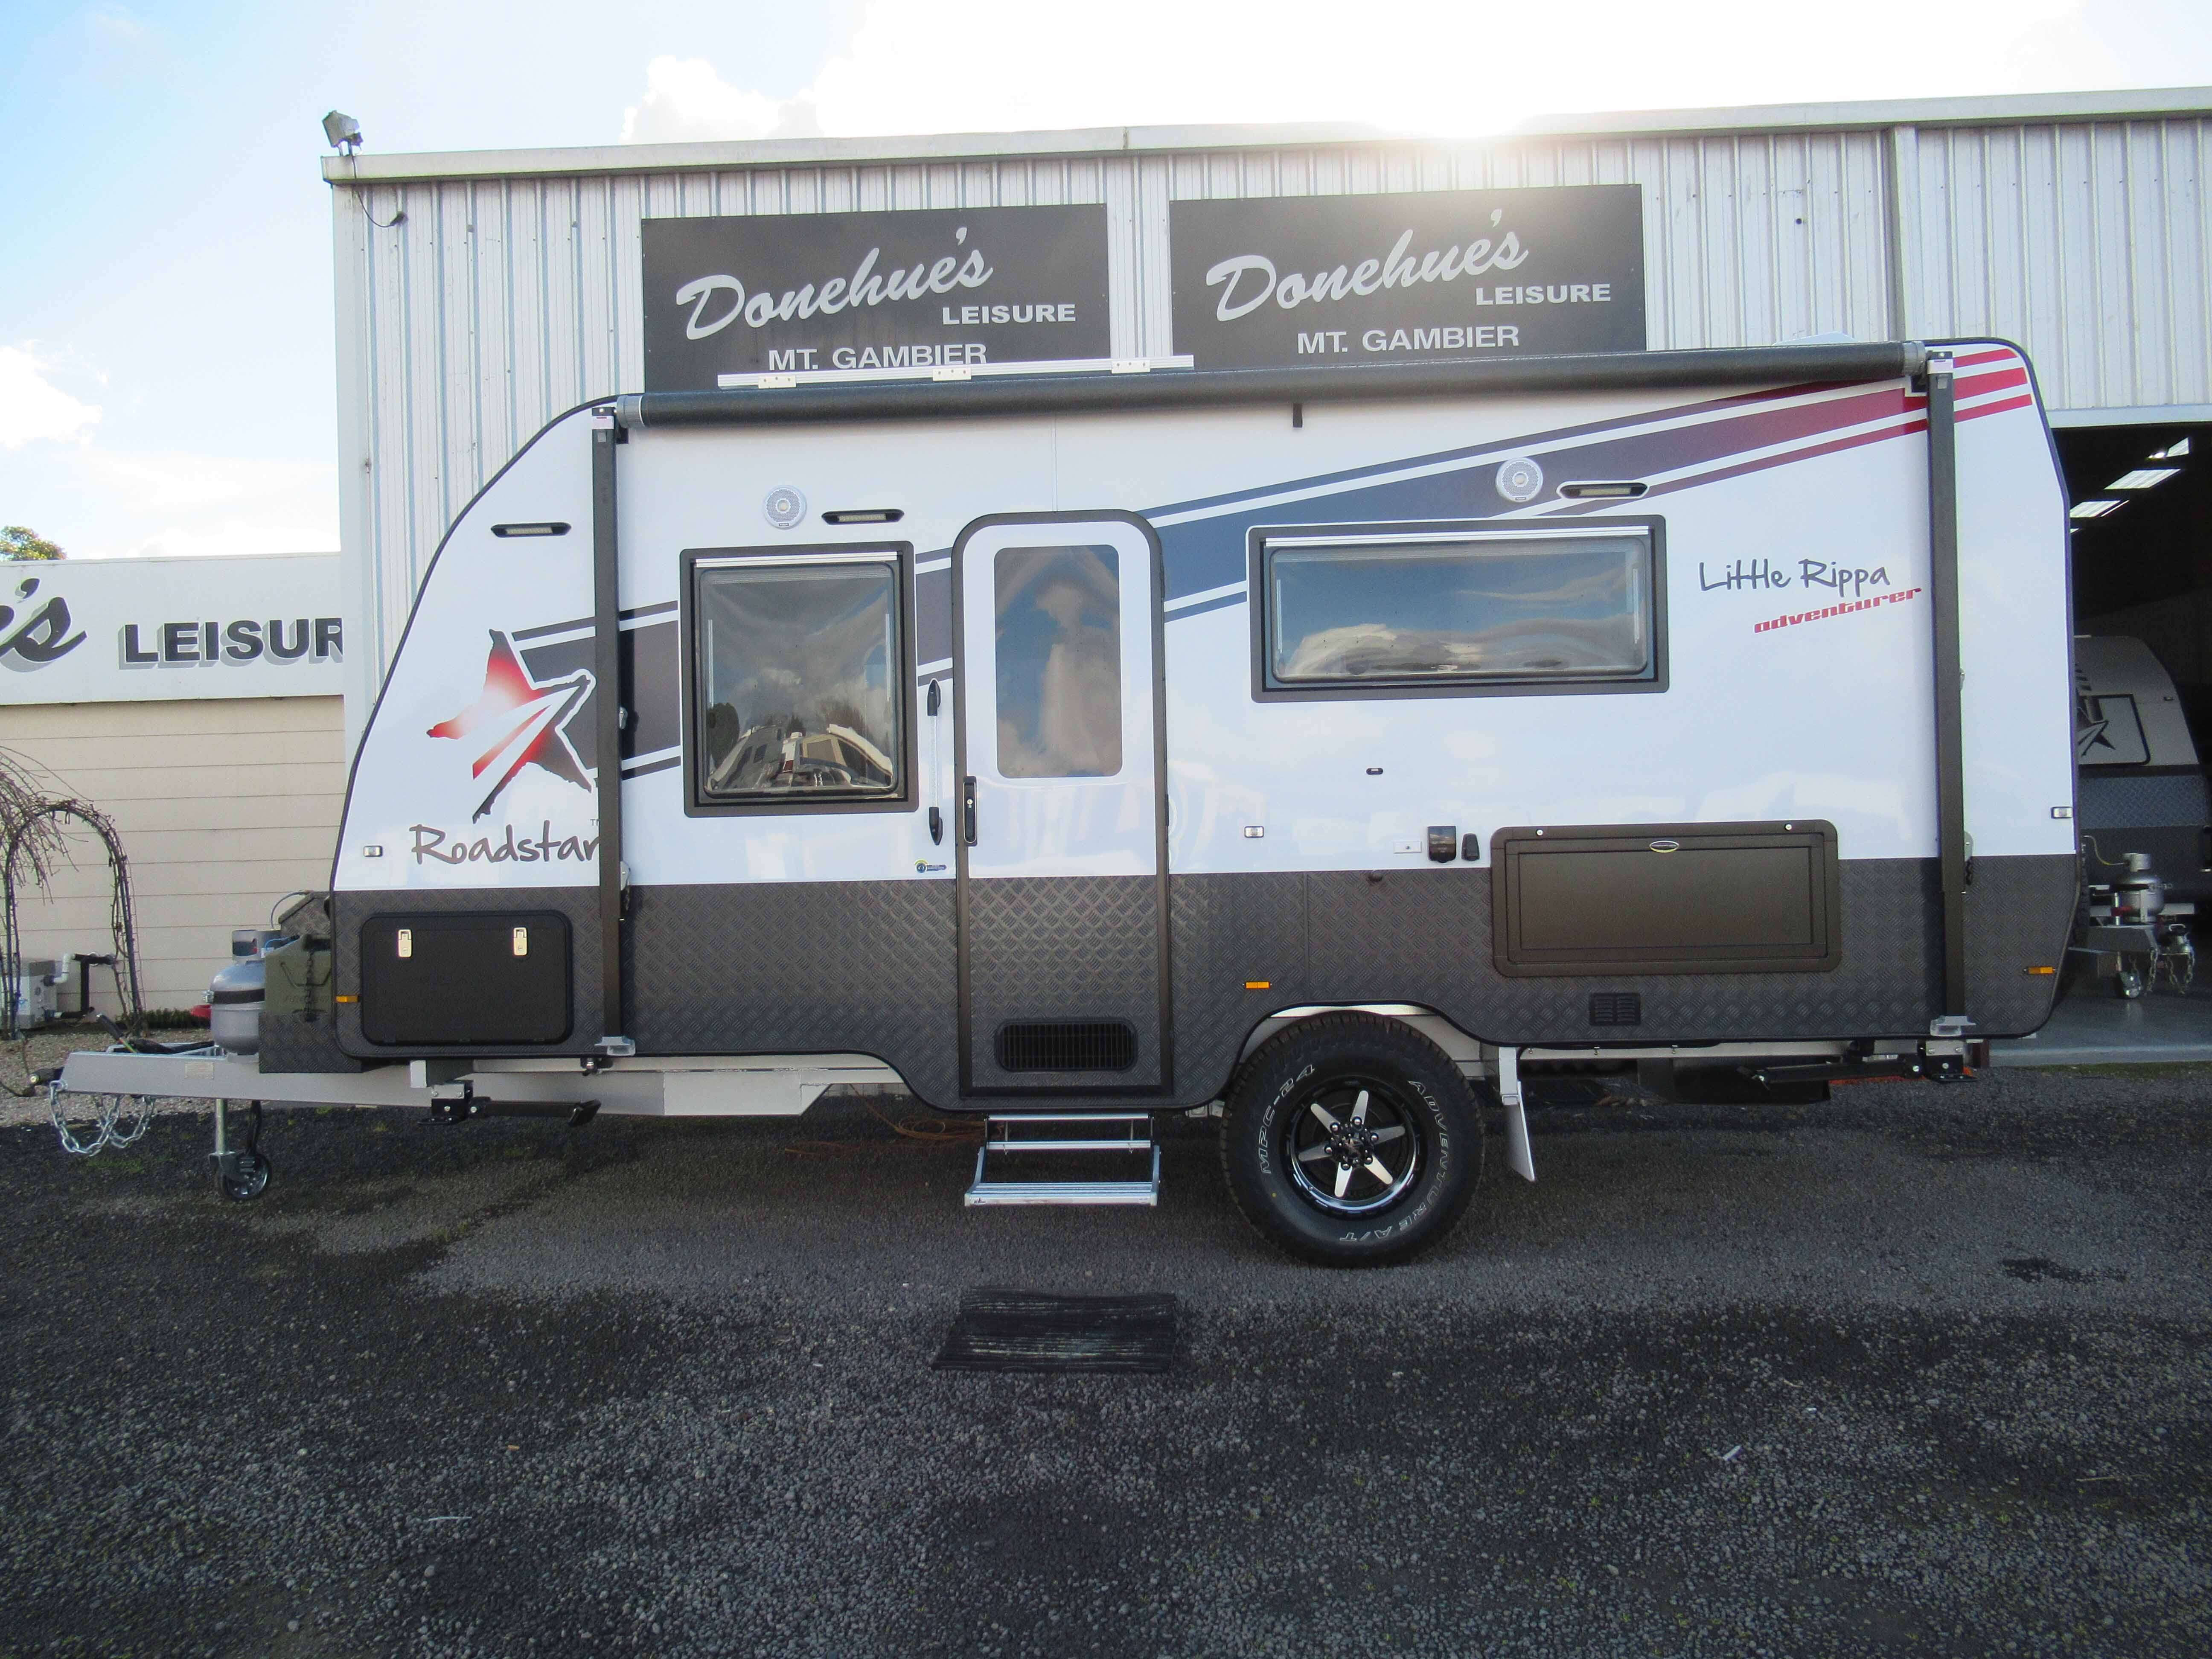 Donehues Leisure New Roadstar Little Rippa Adventure Caravan Mt Gambier 12263 24